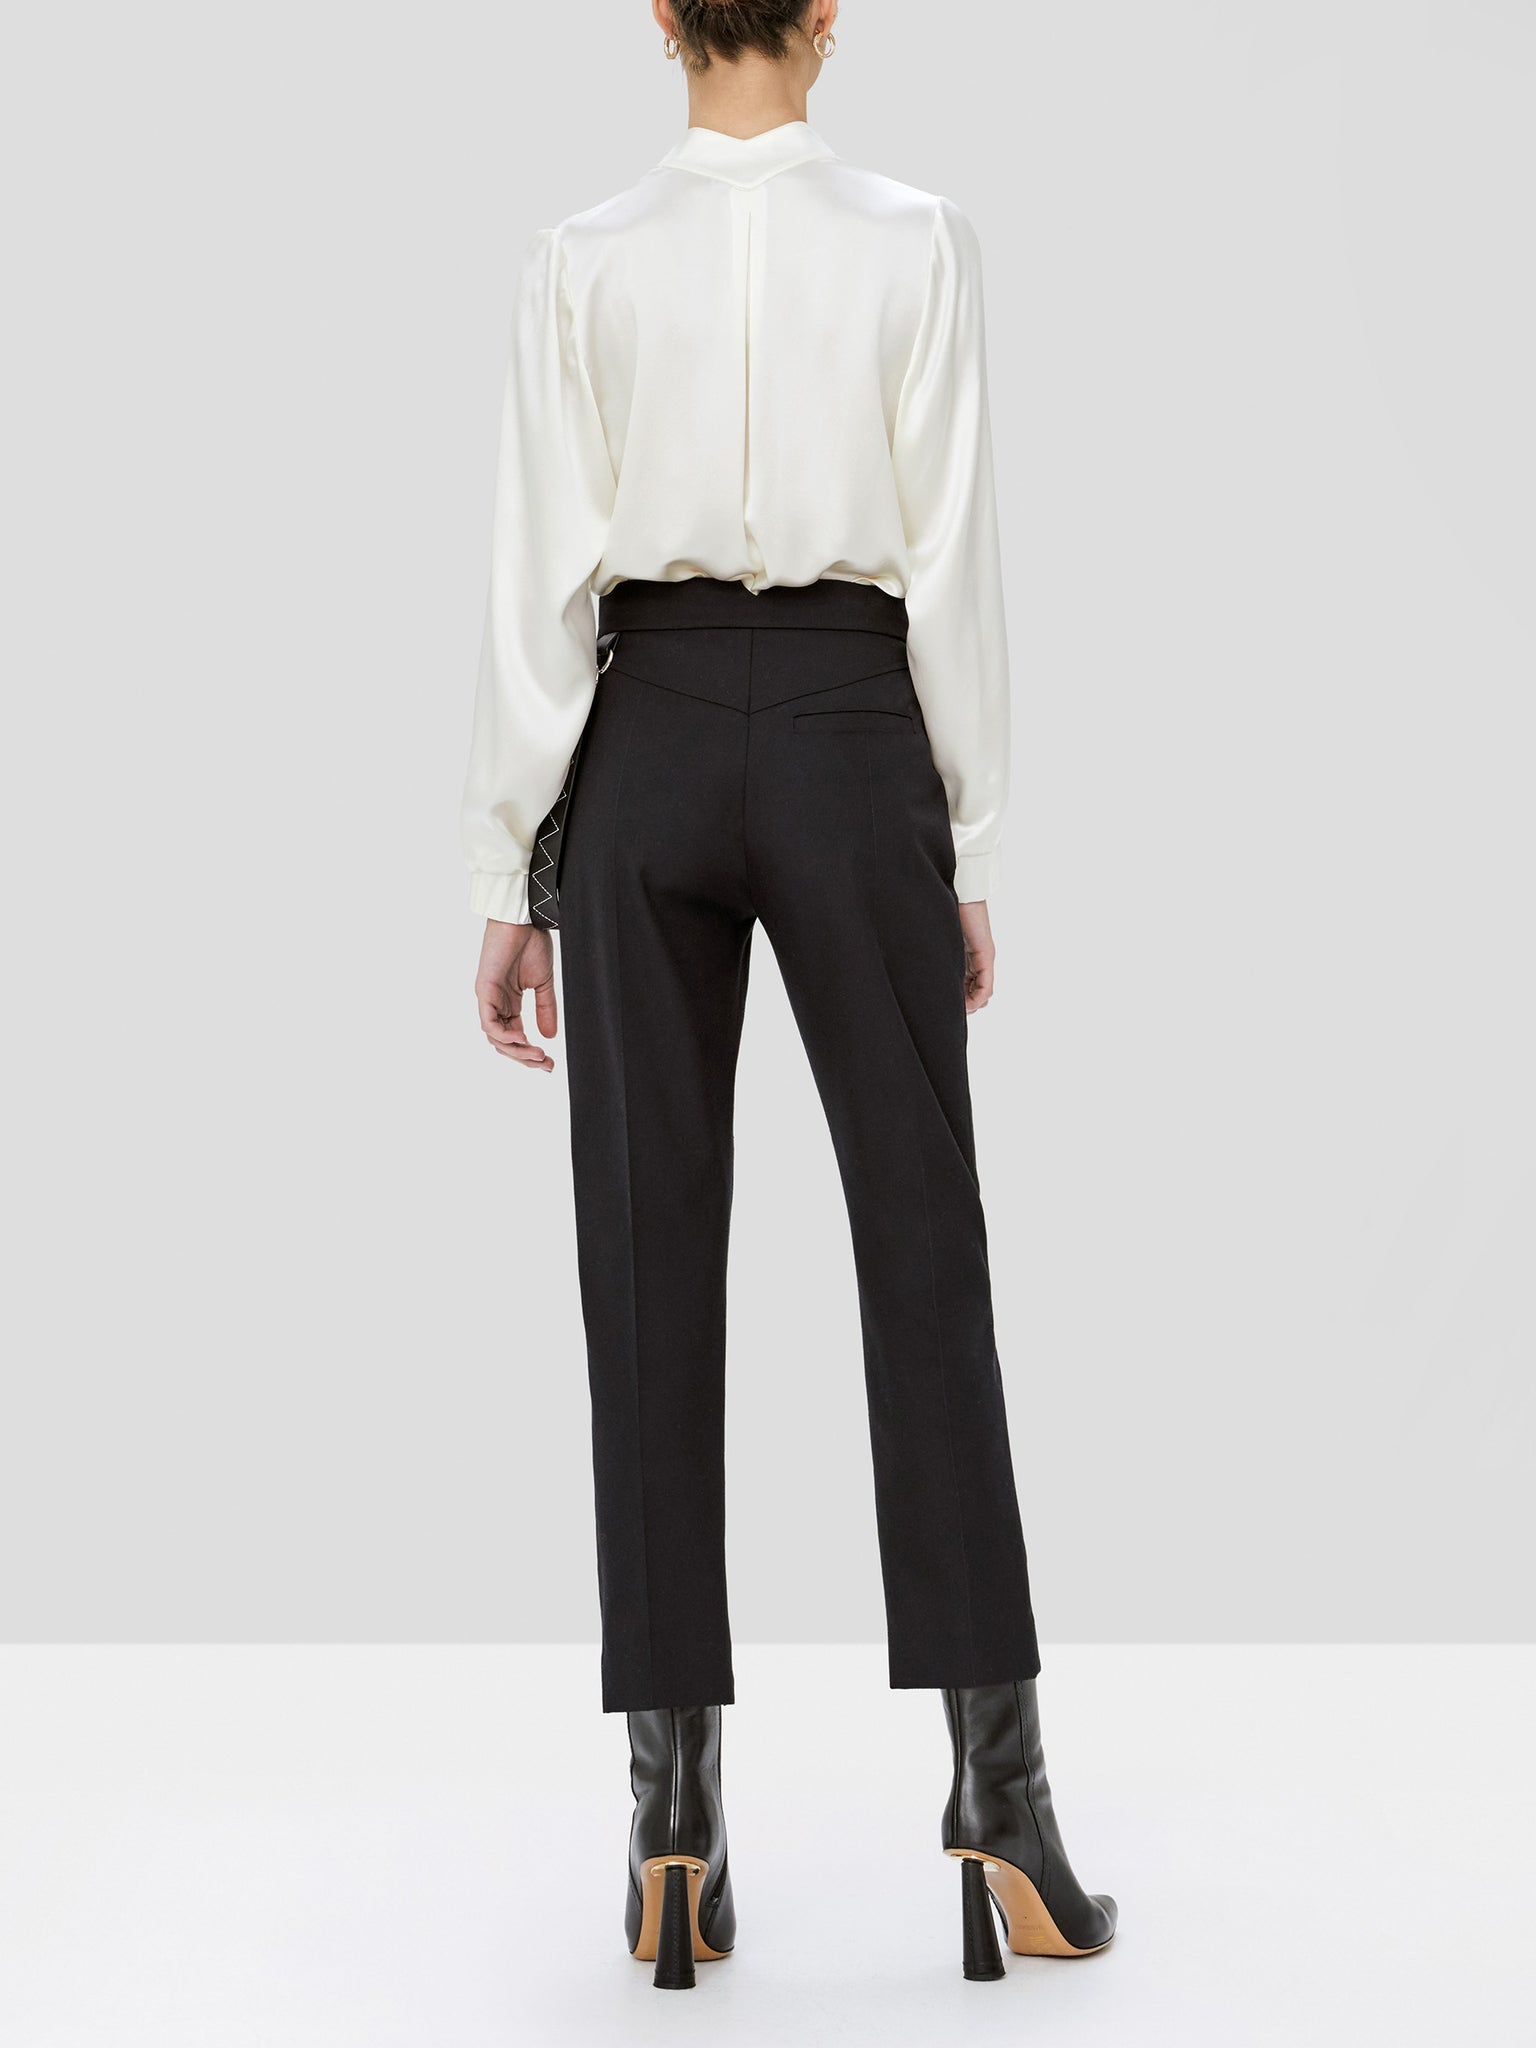 lucero pant in black - Rear View